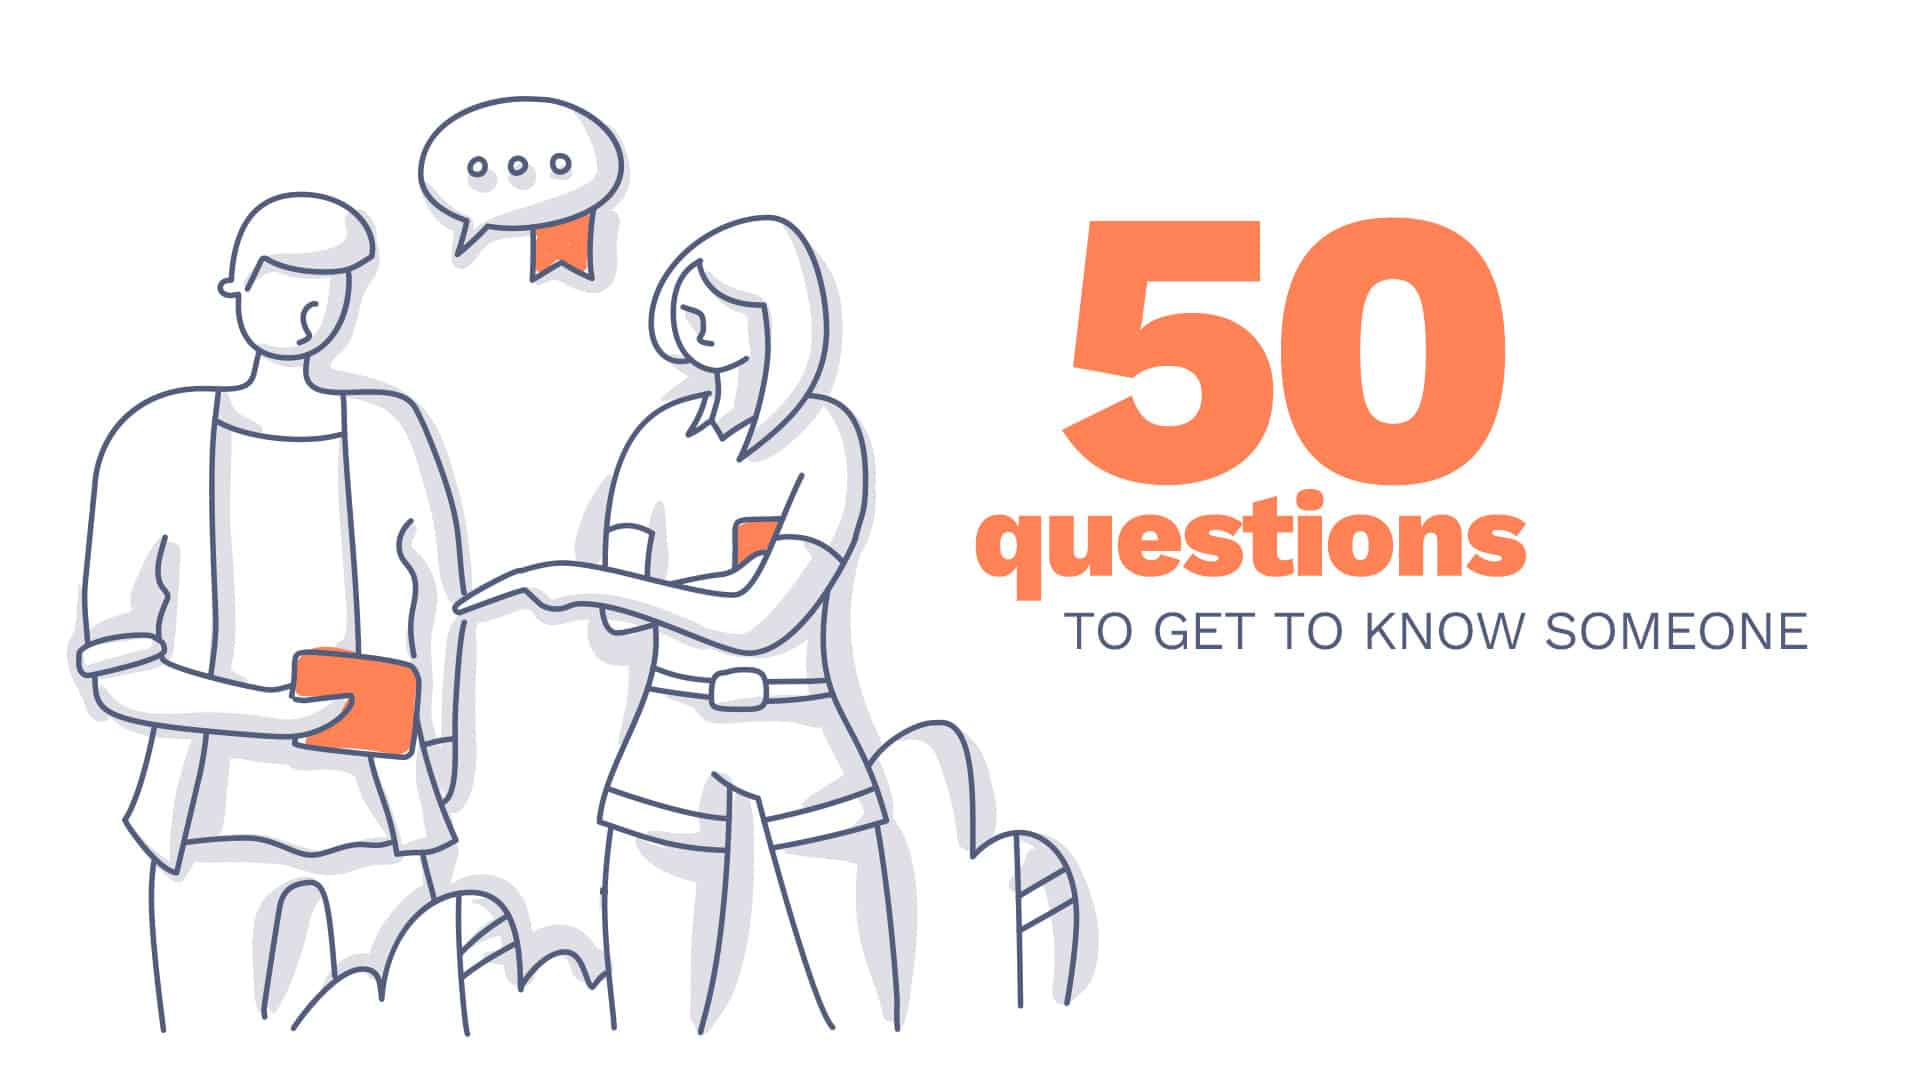 50-questions-to-get-to-know-someone-humor-that-works